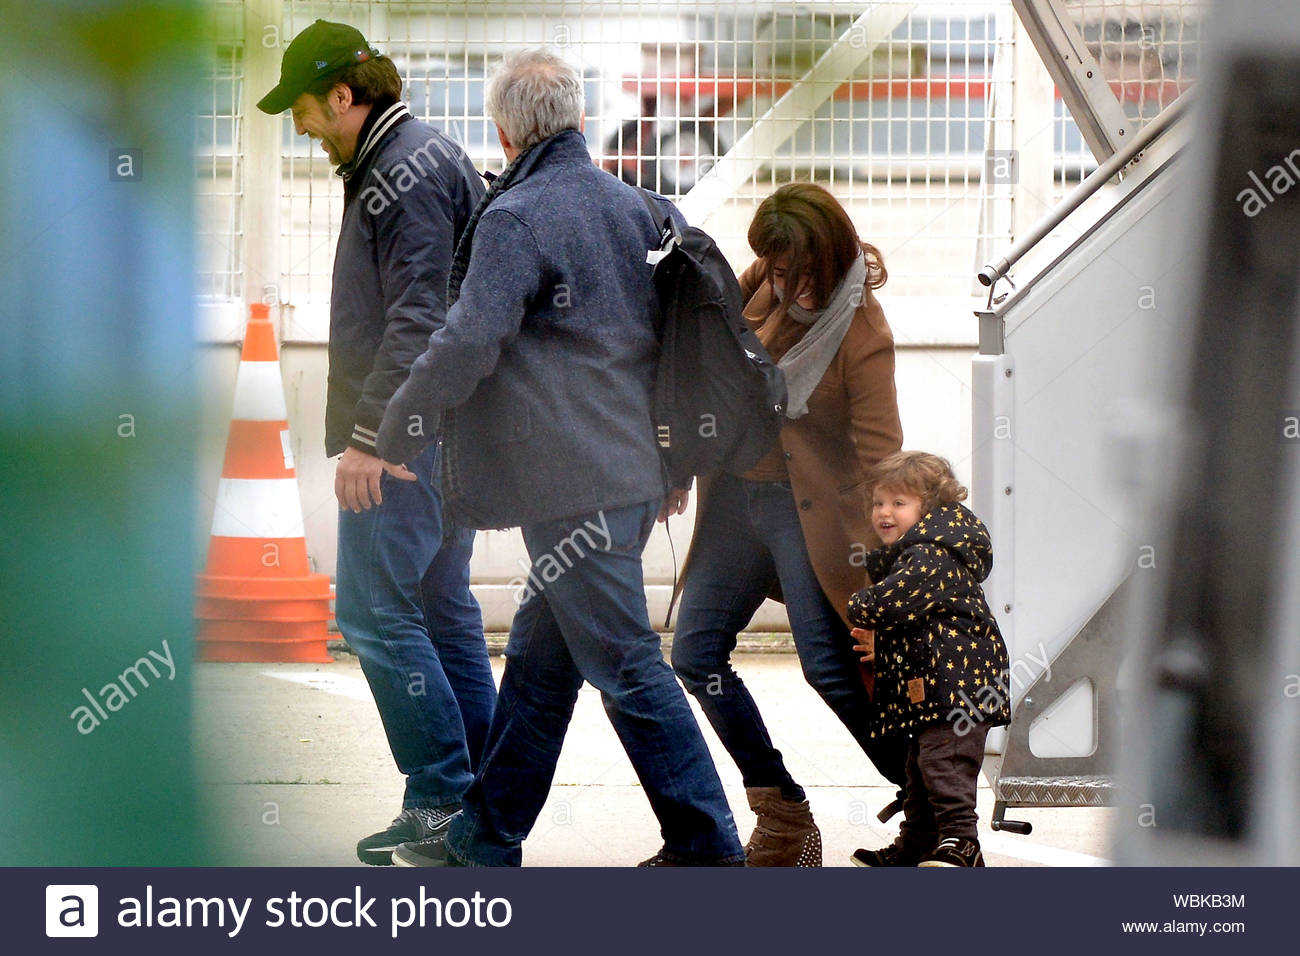 Paris France Penelope Cruz Arrives In Paris At Le Bourget Airport With Her Husband Javier Bardem